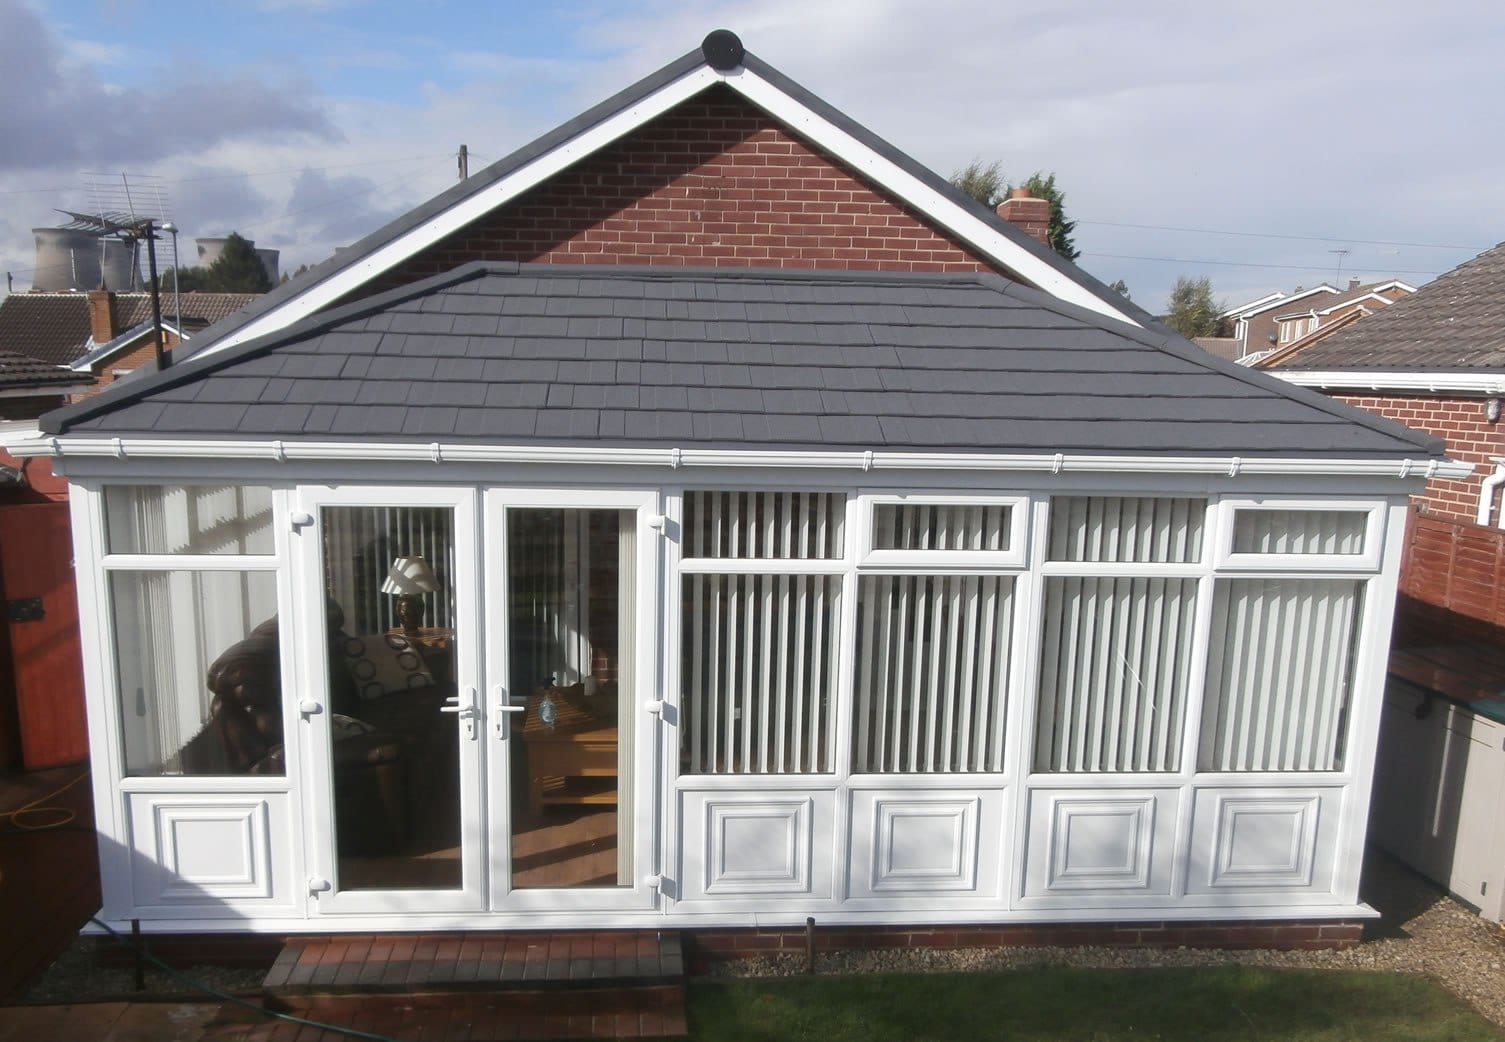 sarah baker pearce tiled roof conservatories review image 1